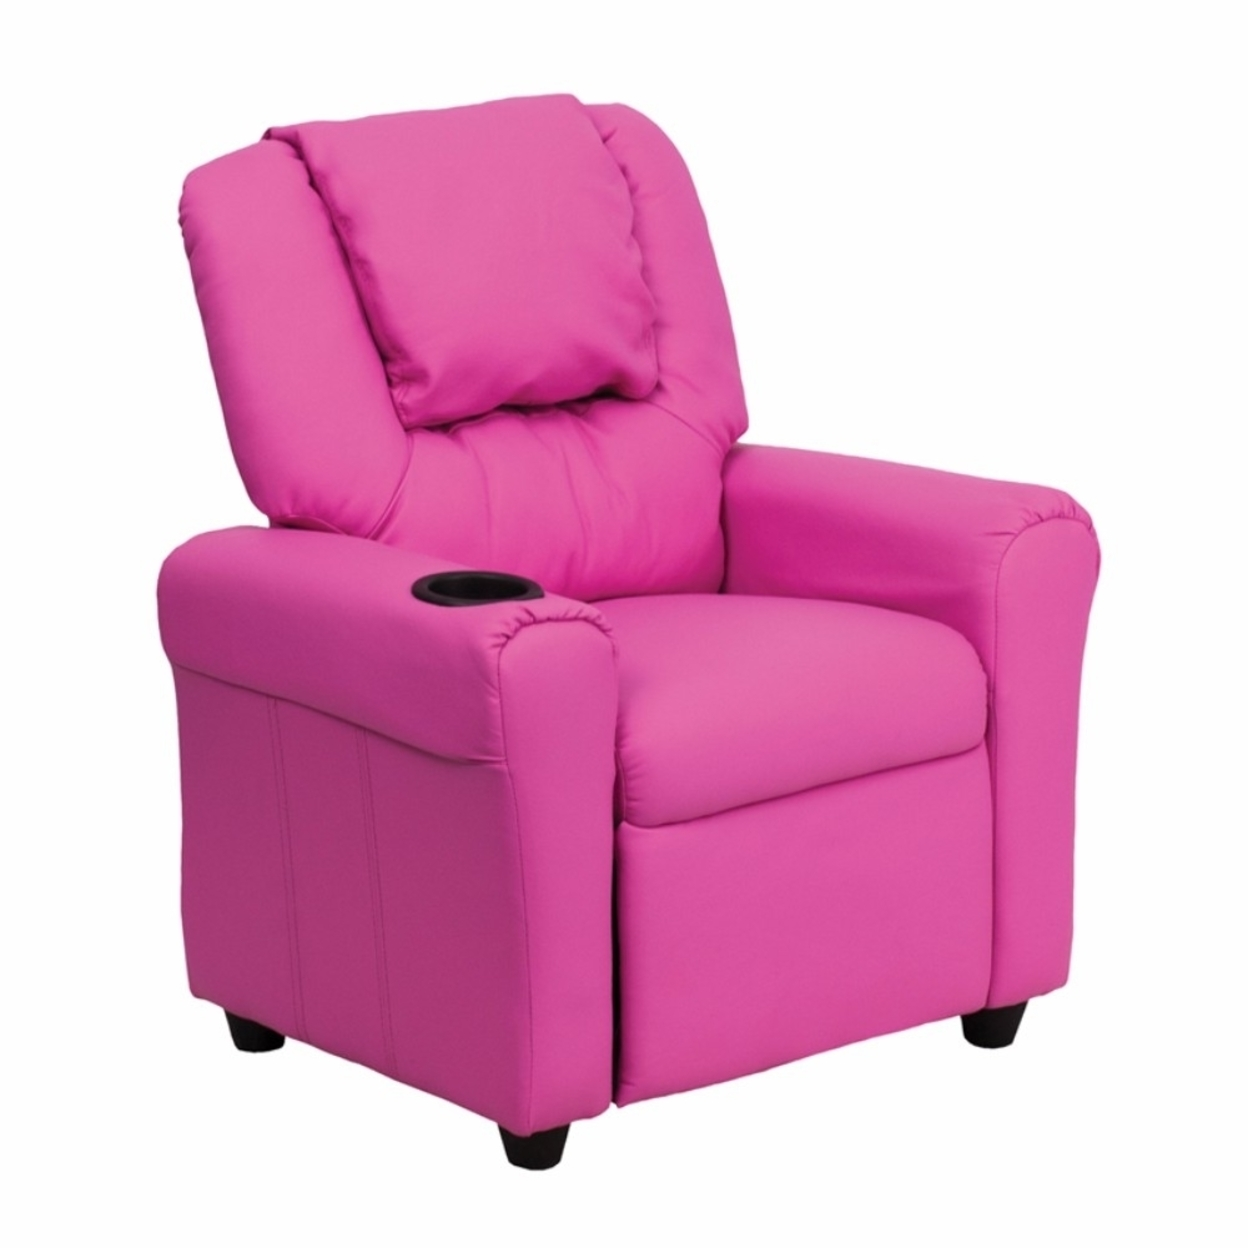 Flash Furniture Contemporary Hot Pink Vinyl Kids Recliner with Cup Holder and Headrest [863-Dg-Ult-Kid-Hot-Pink-Gg] 59e460282a00e43b69587e57